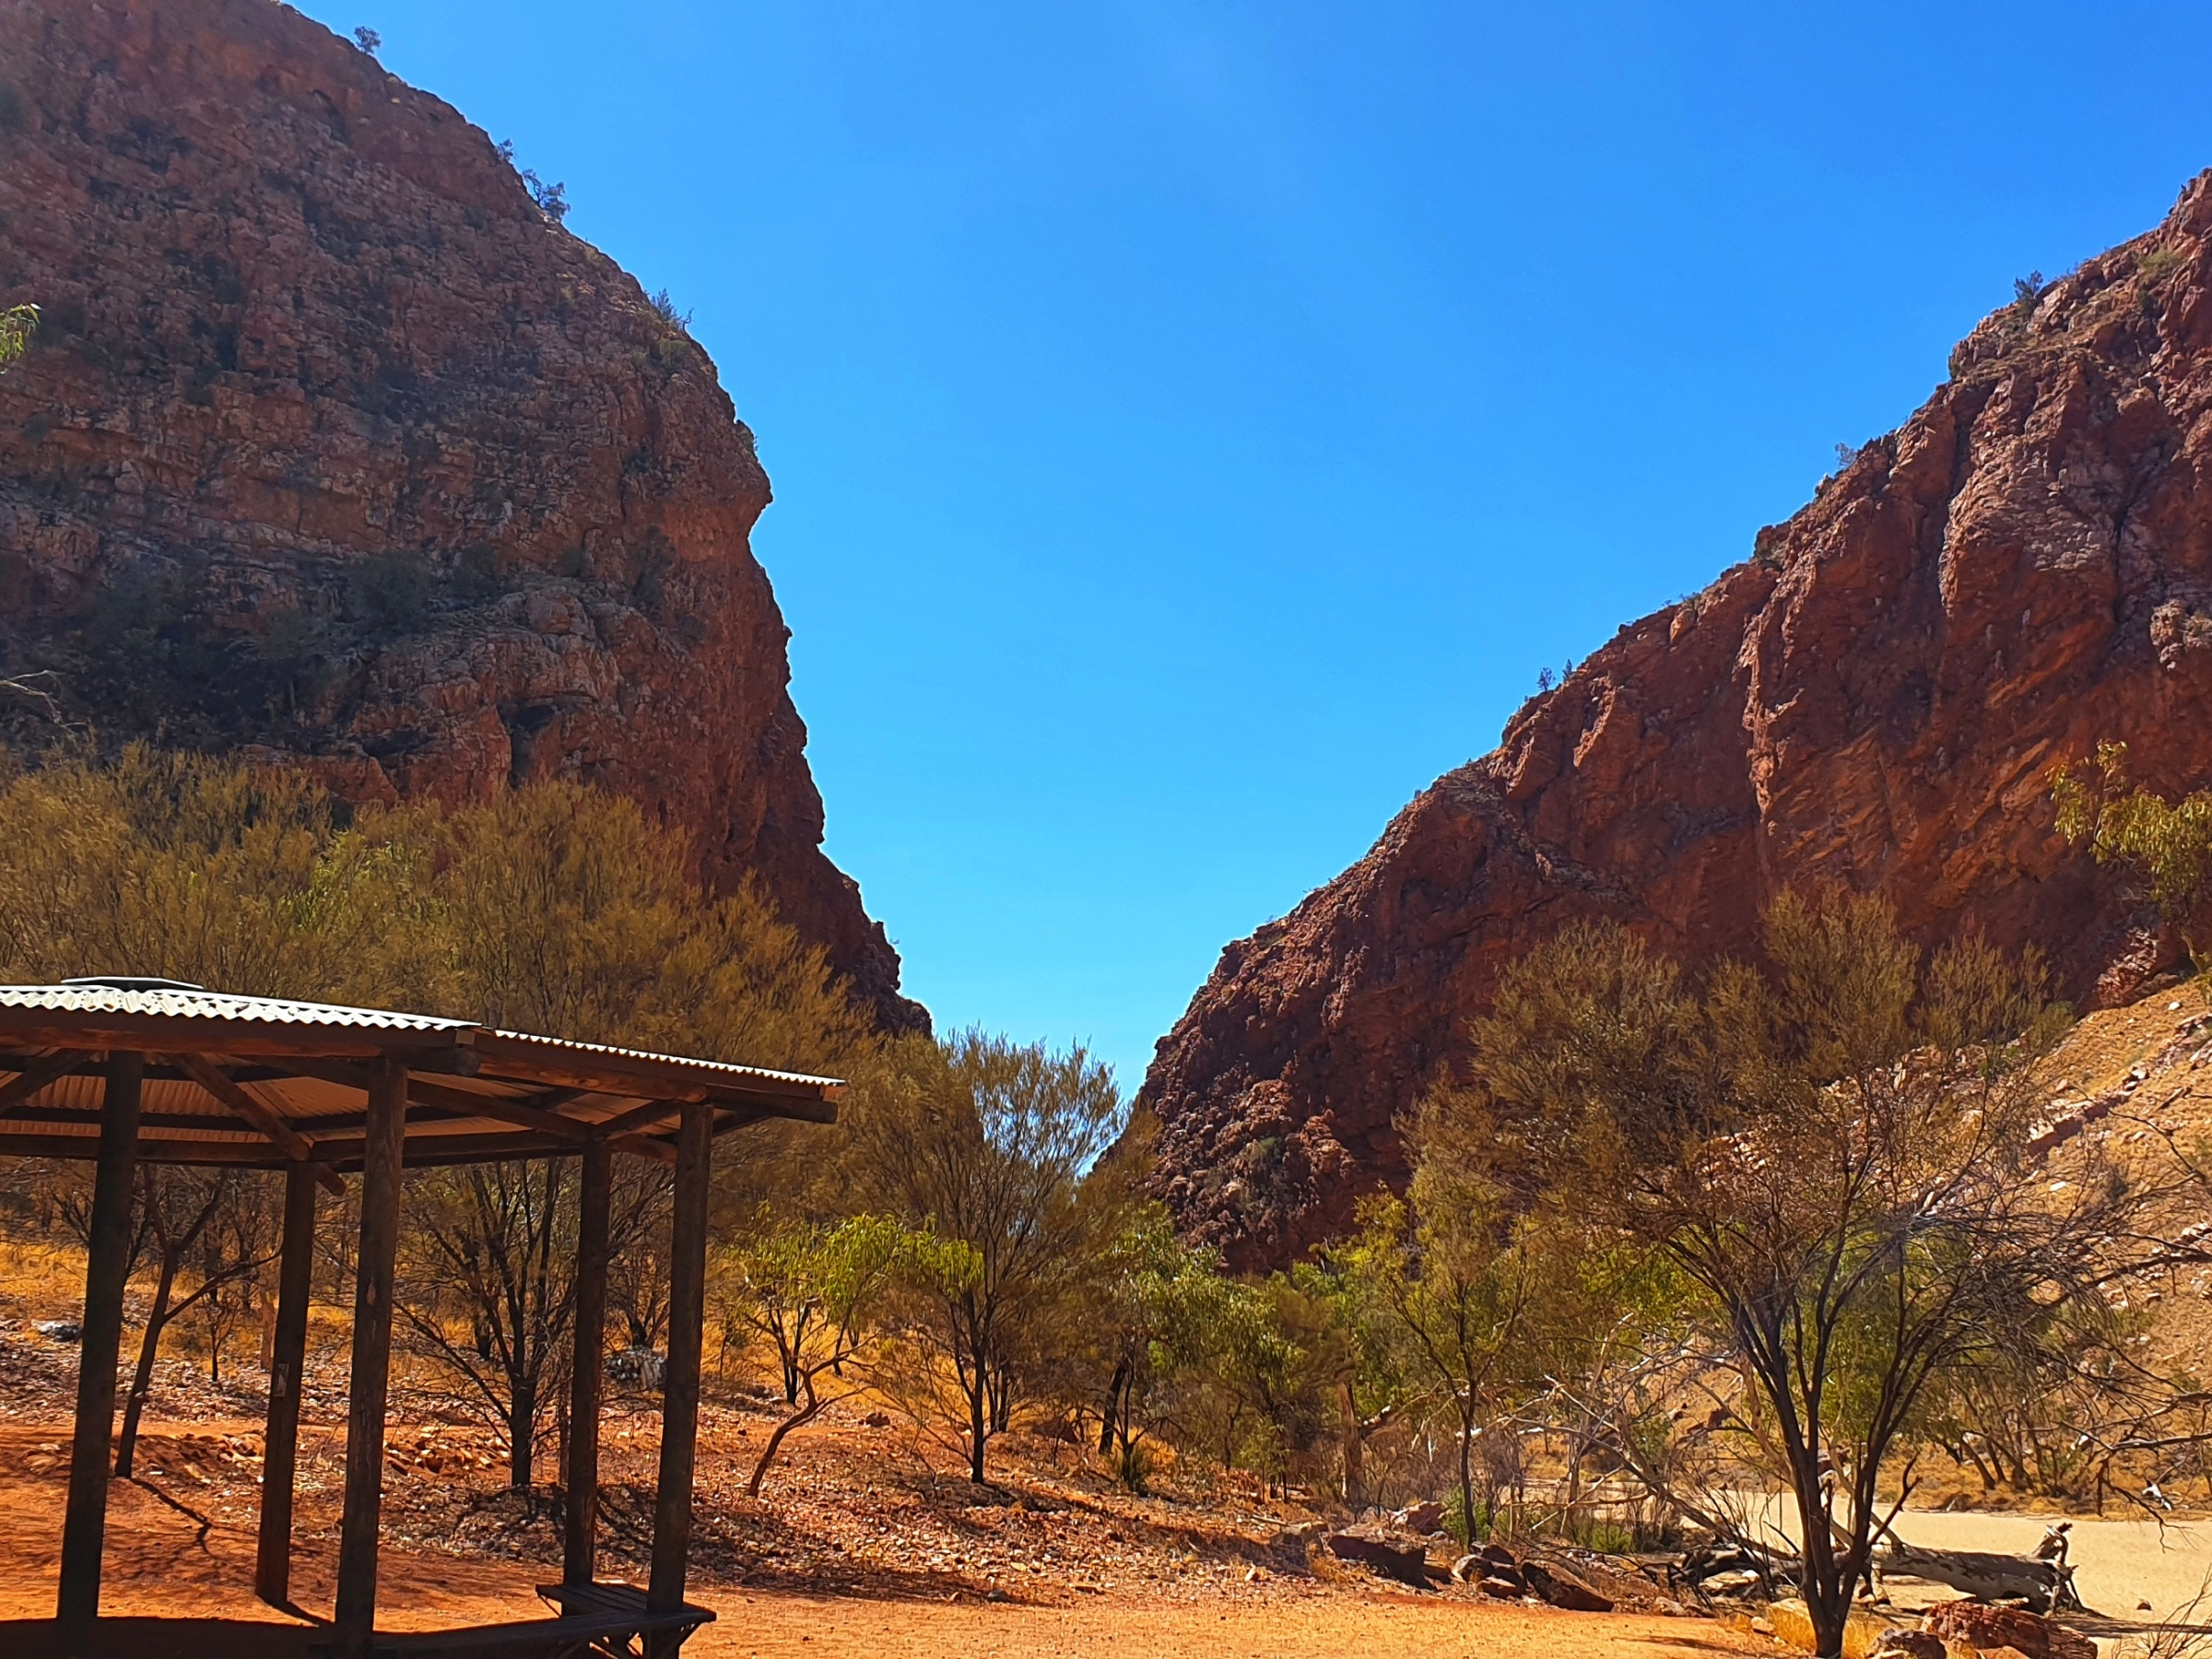 The entrance to Simpson's Gap, Alice Springs from the car park.